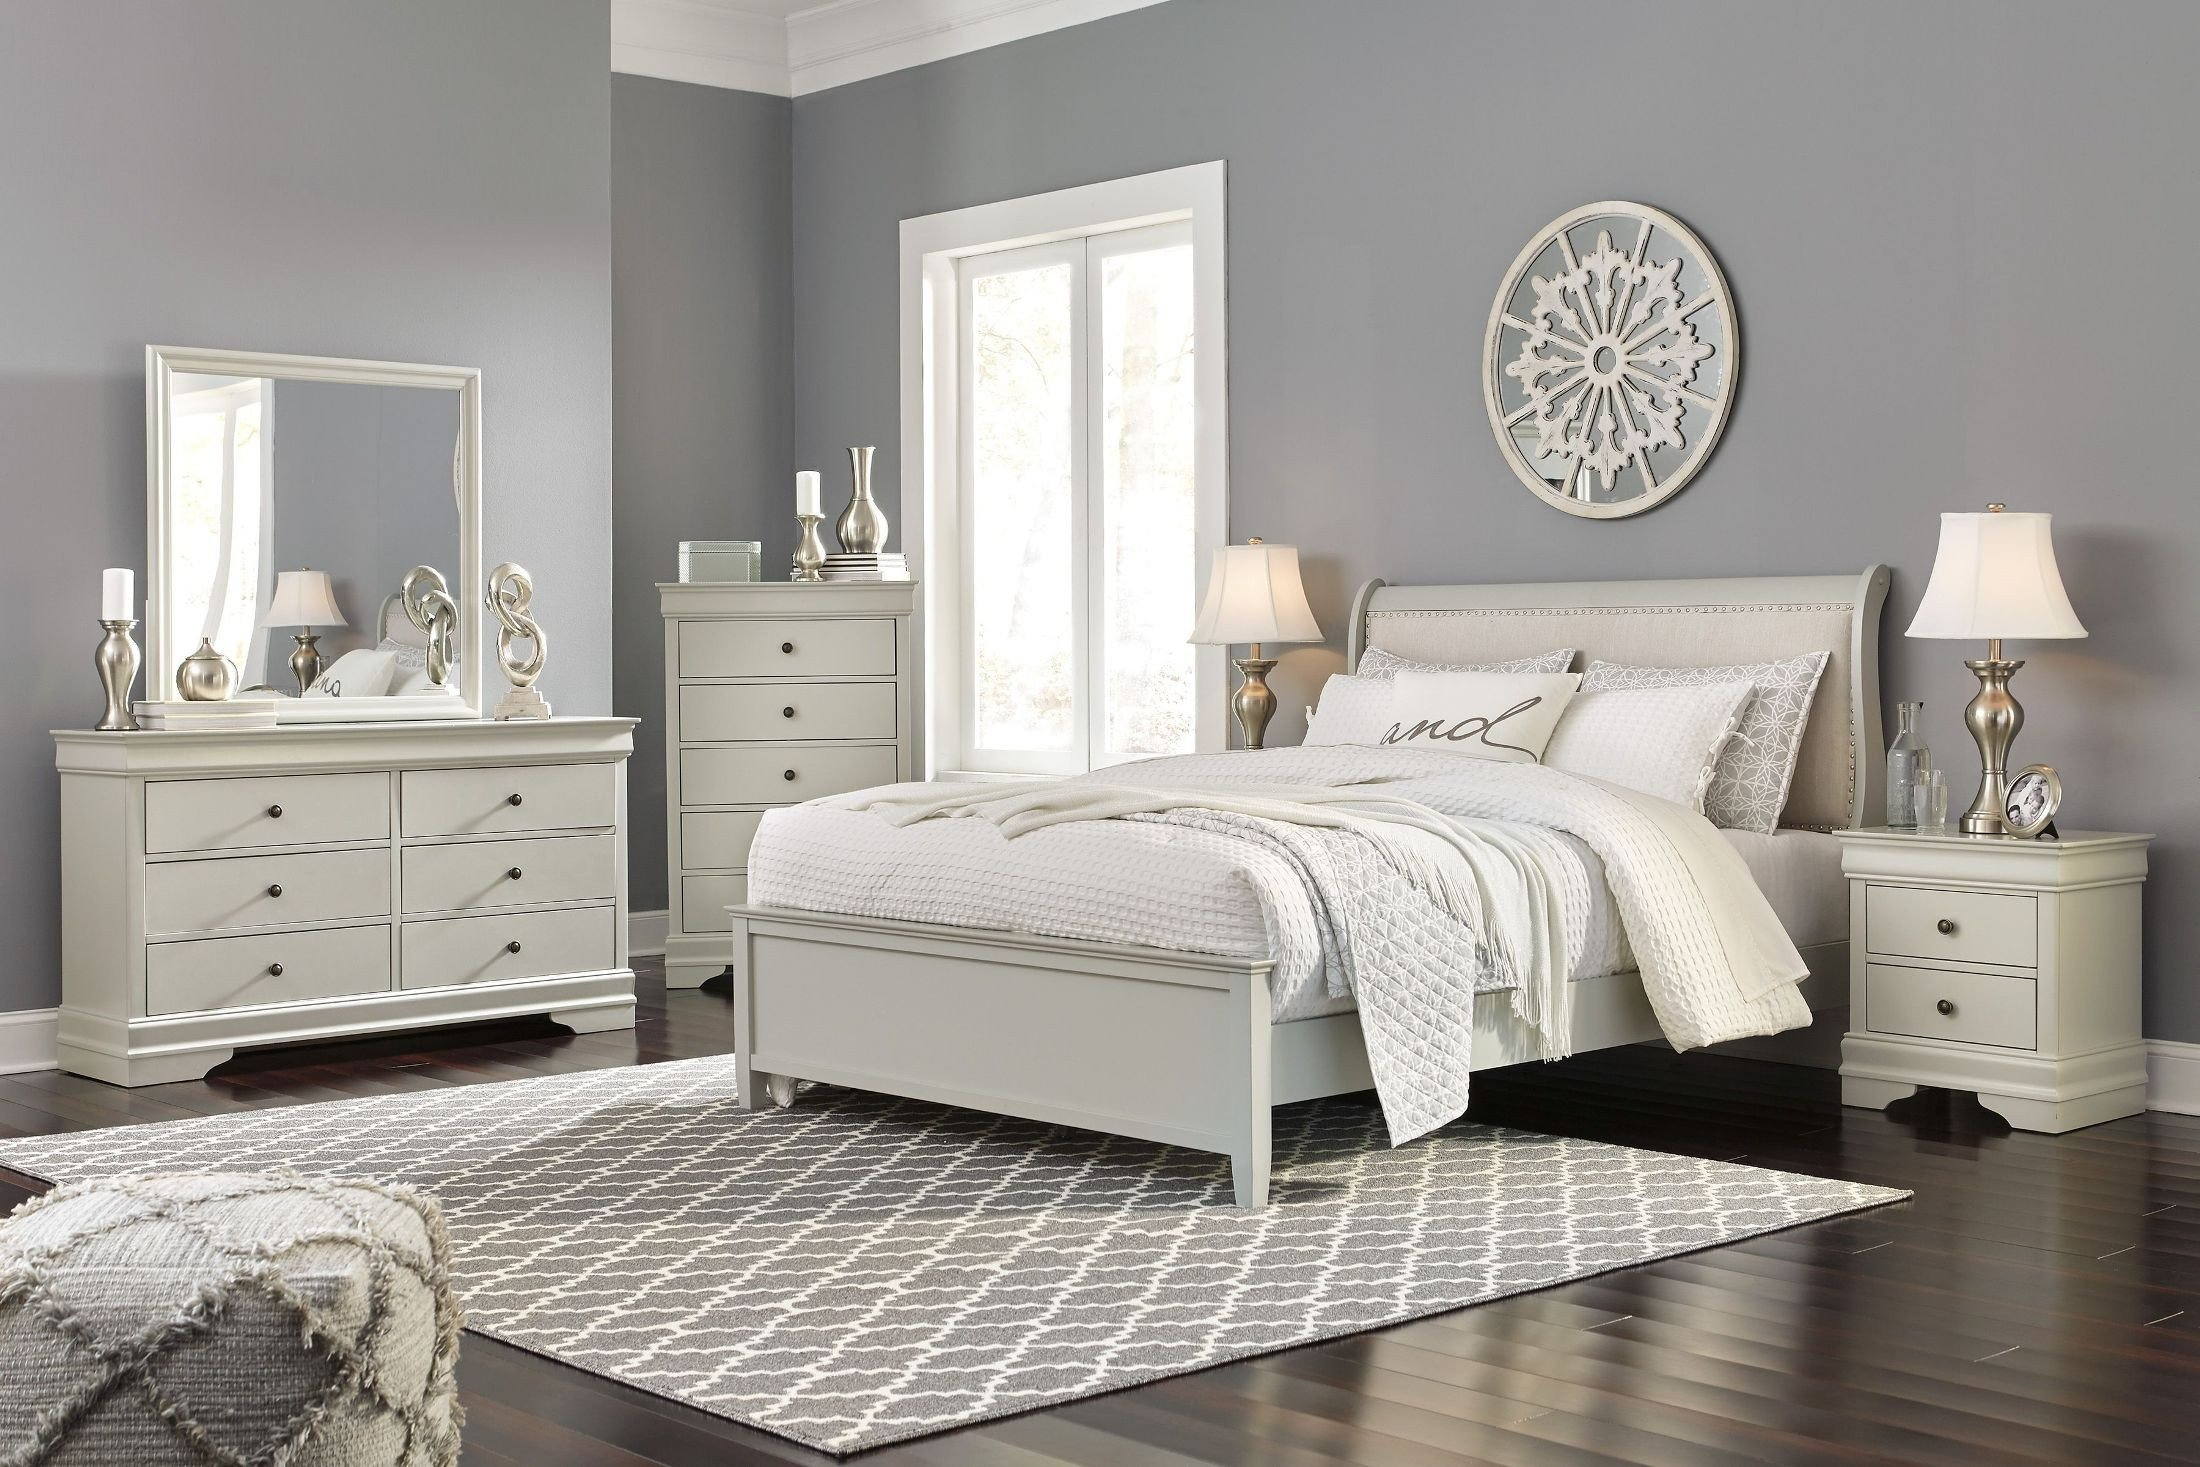 Tufted Queen Bedroom Set Awesome Emma Mason Signature Jarred 5 Piece Sleigh Bedroom Set In Gray